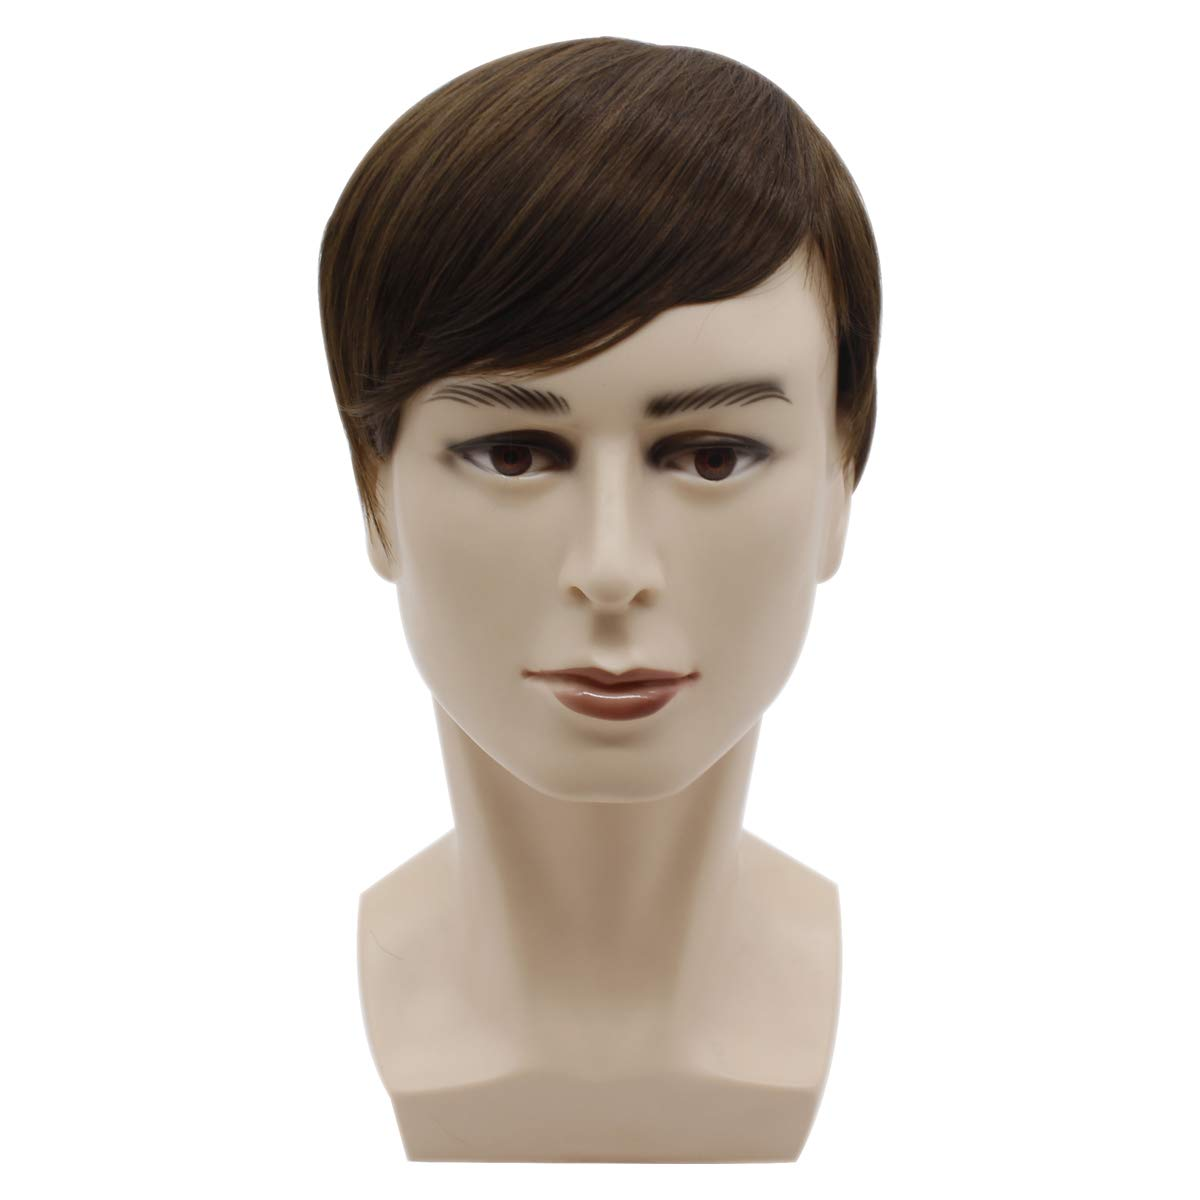 YYHR Short Brown Wigs for Men Short Straight Mens Wig Realistic Natural Male Side Part Wig